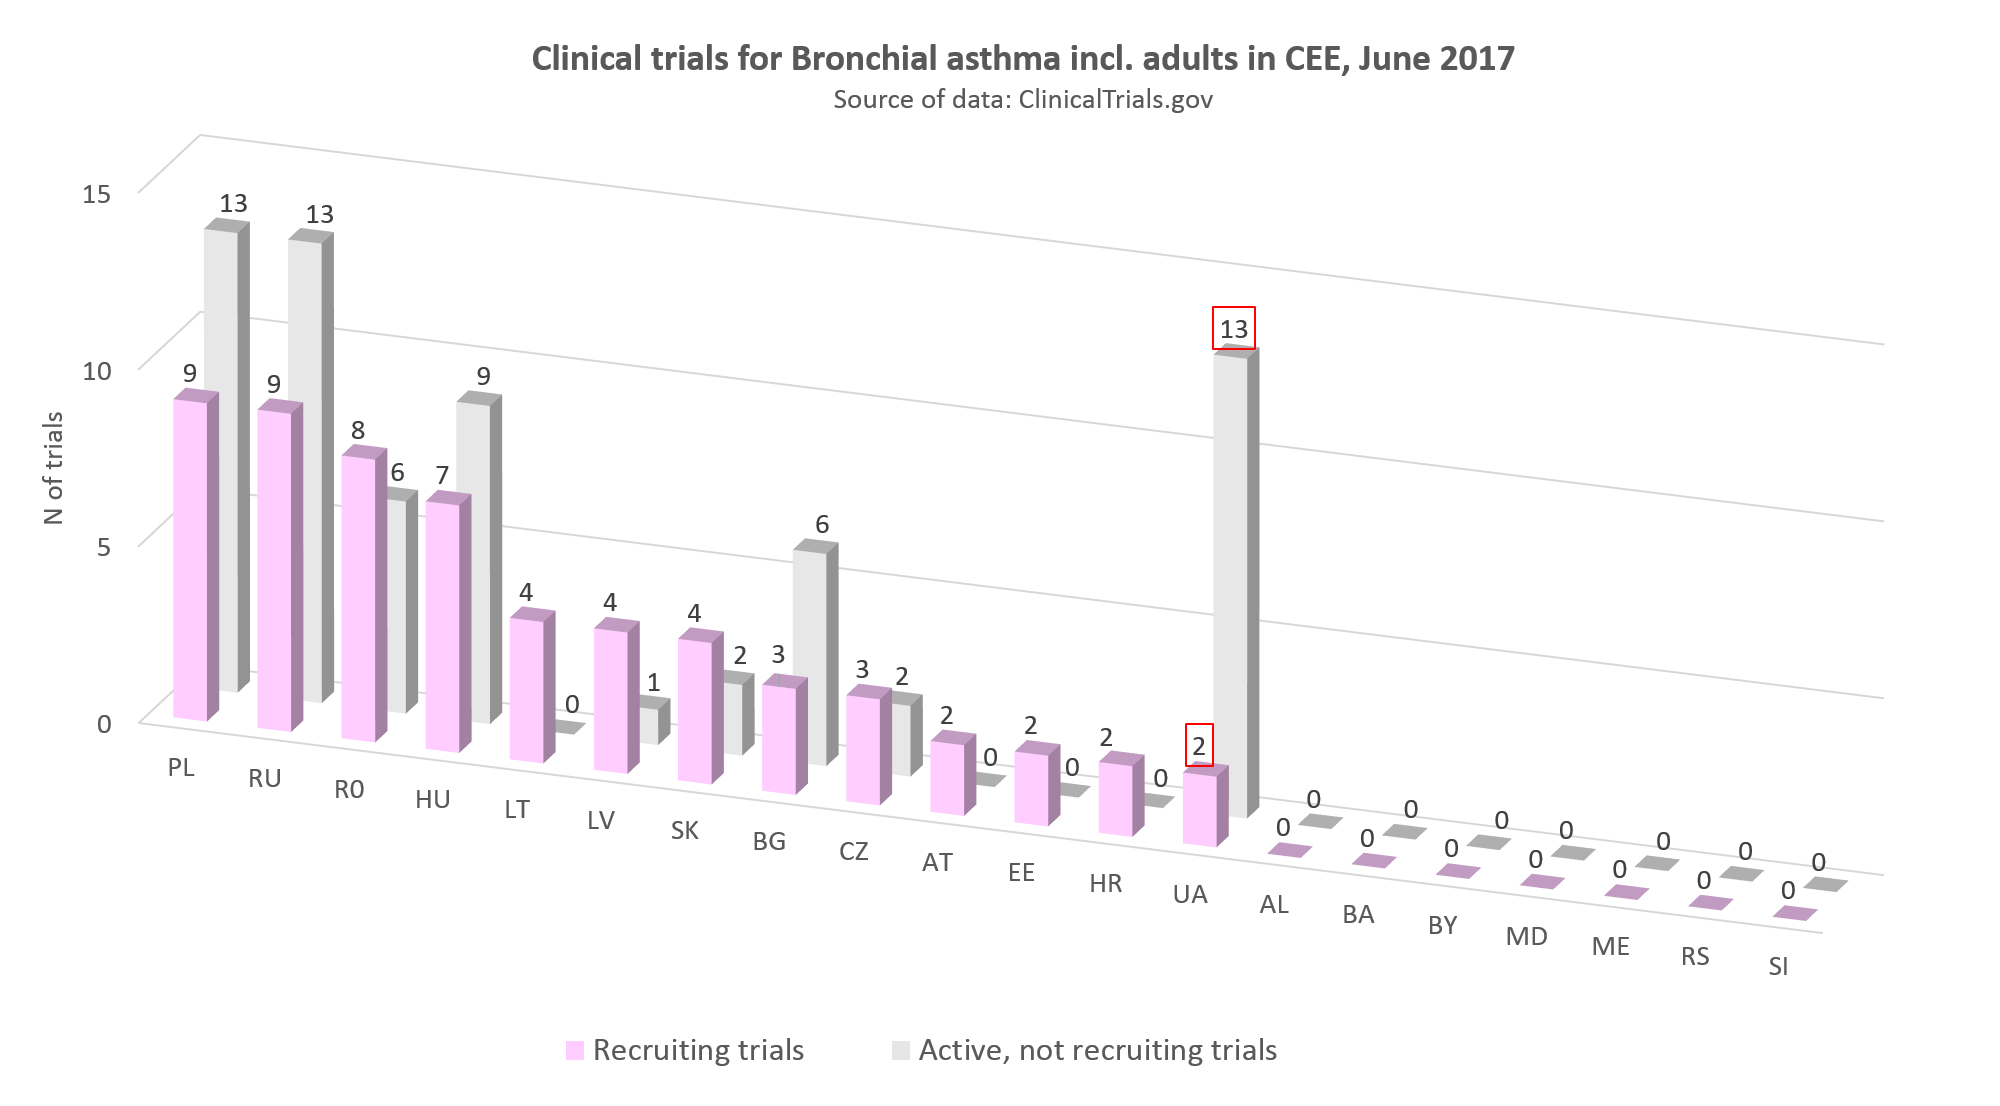 clinical trials for bronchial asthma incl adults in CEE